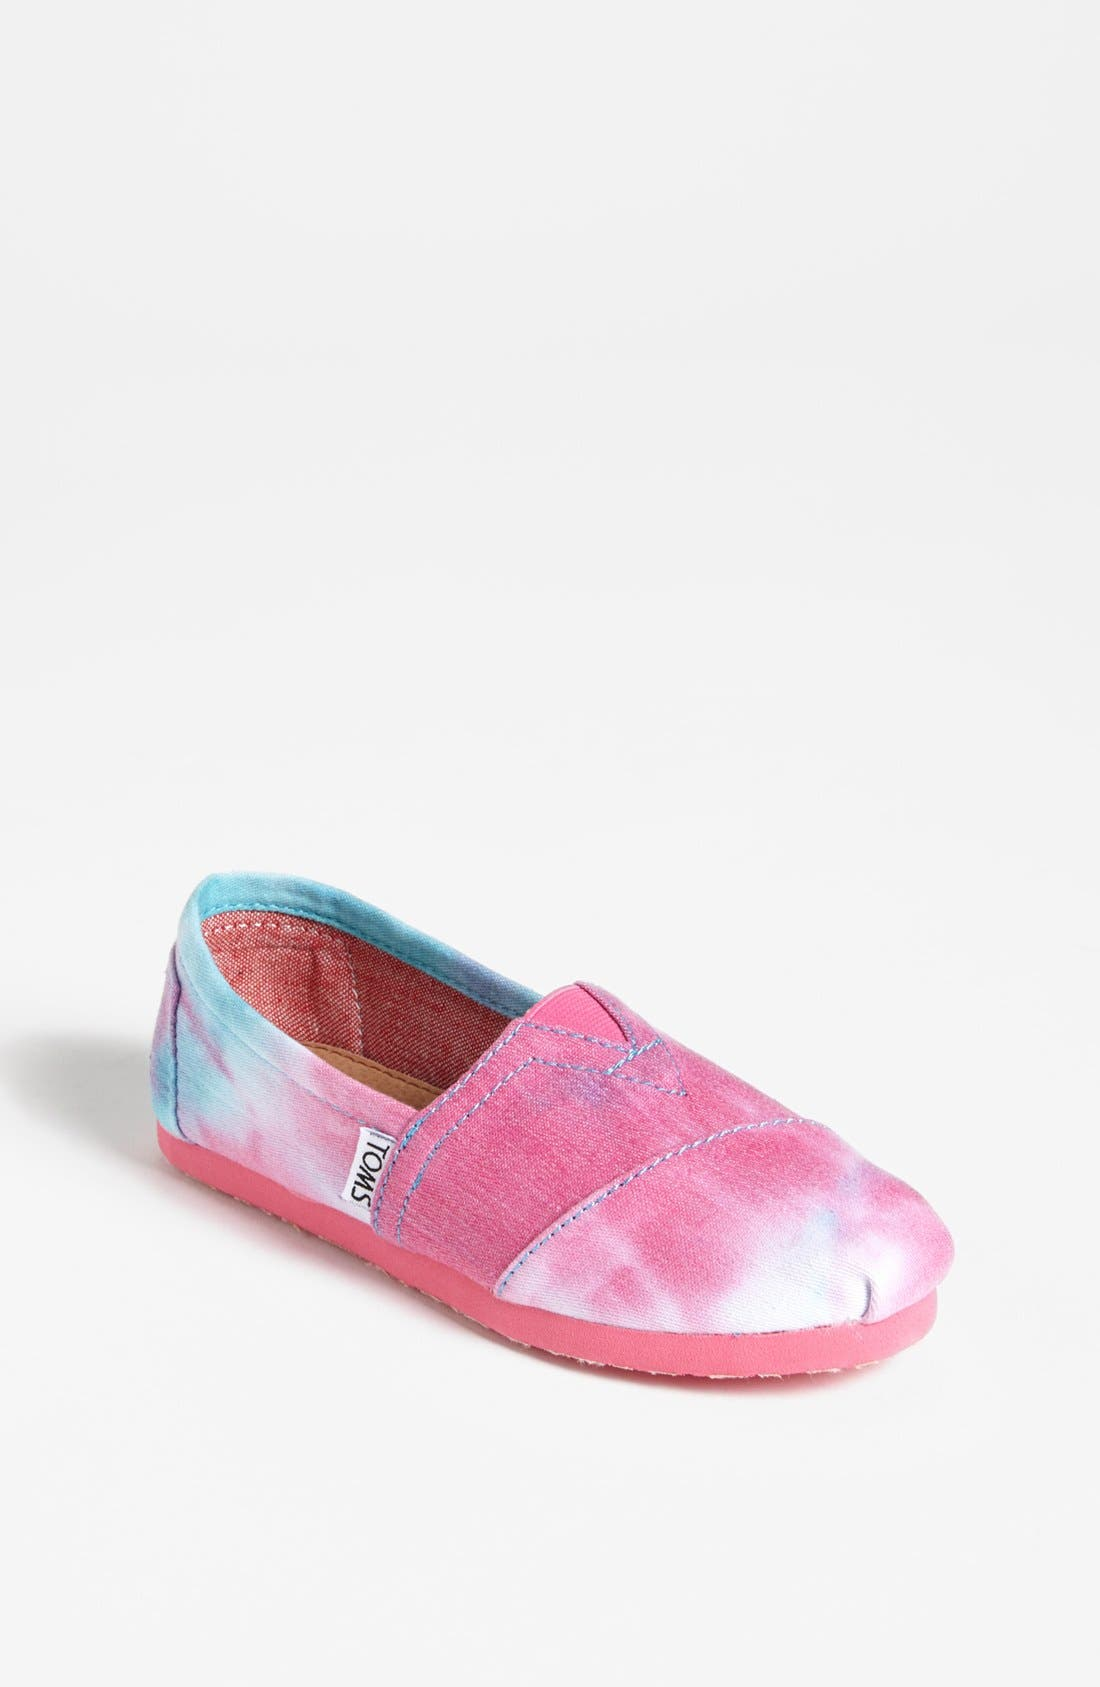 Main Image - TOMS 'Classic Youth - Tie Dye' Slip-On (Toddler, Little Kid & Big Kid) (Nordstrom Exclusive)